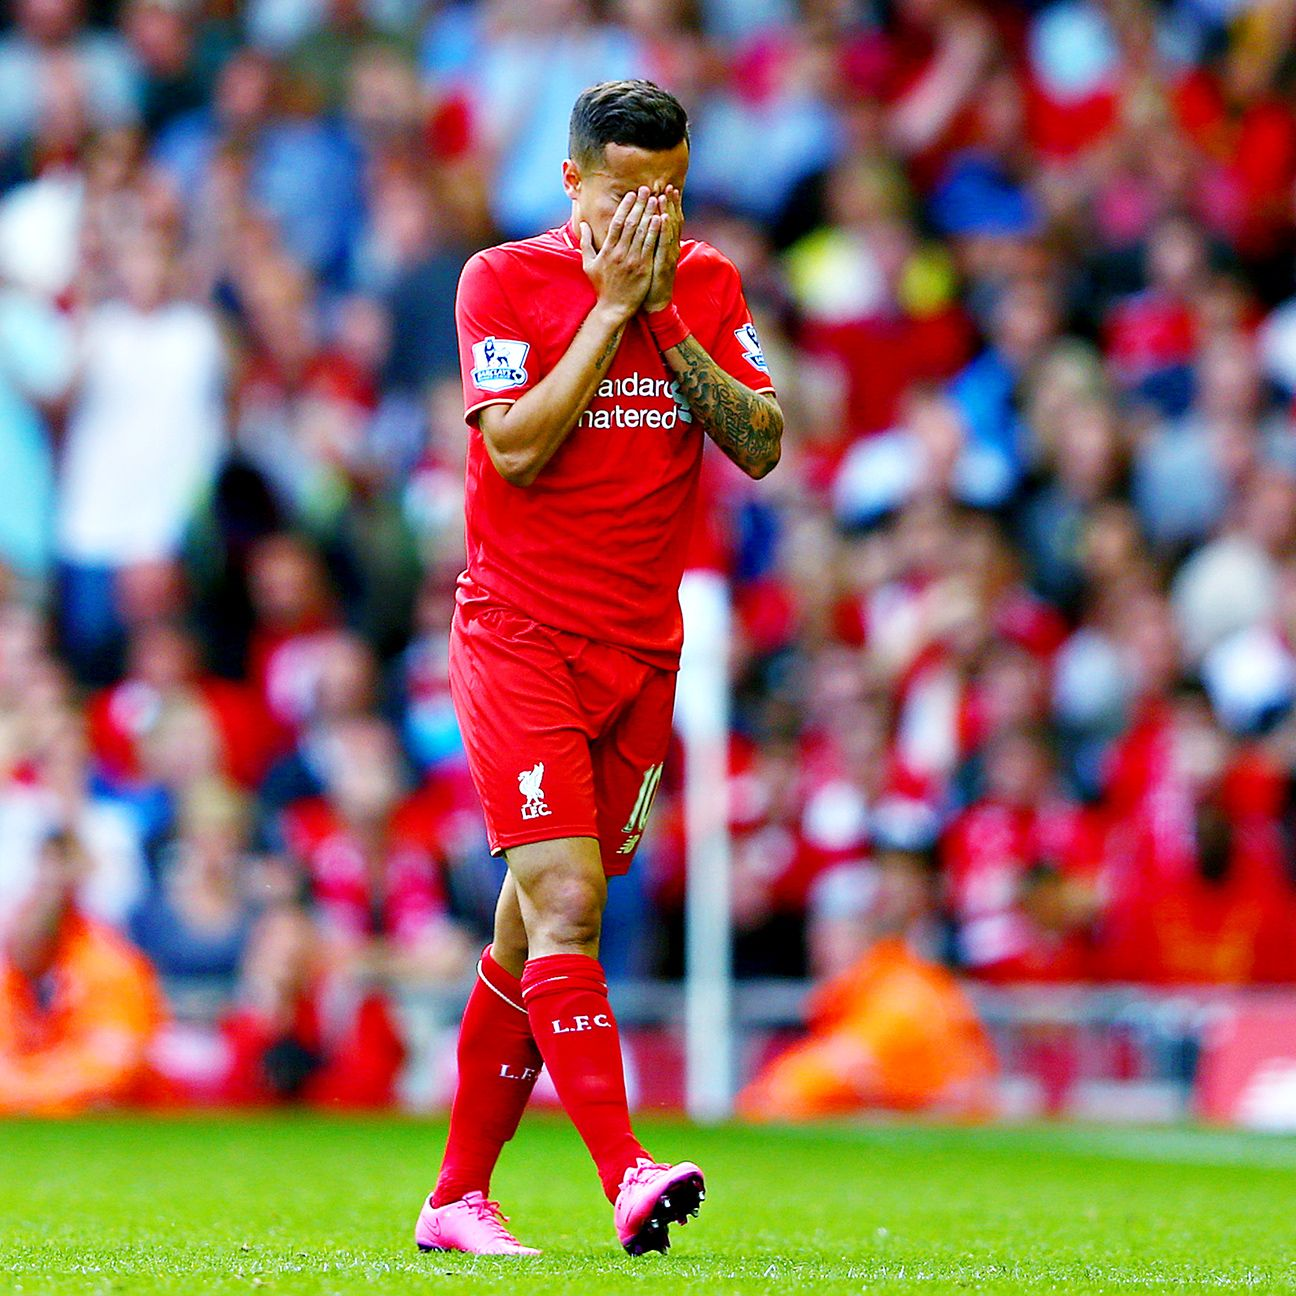 Philippe Coutinho had little influence in Liverpool's 1-1 draw at Everton.